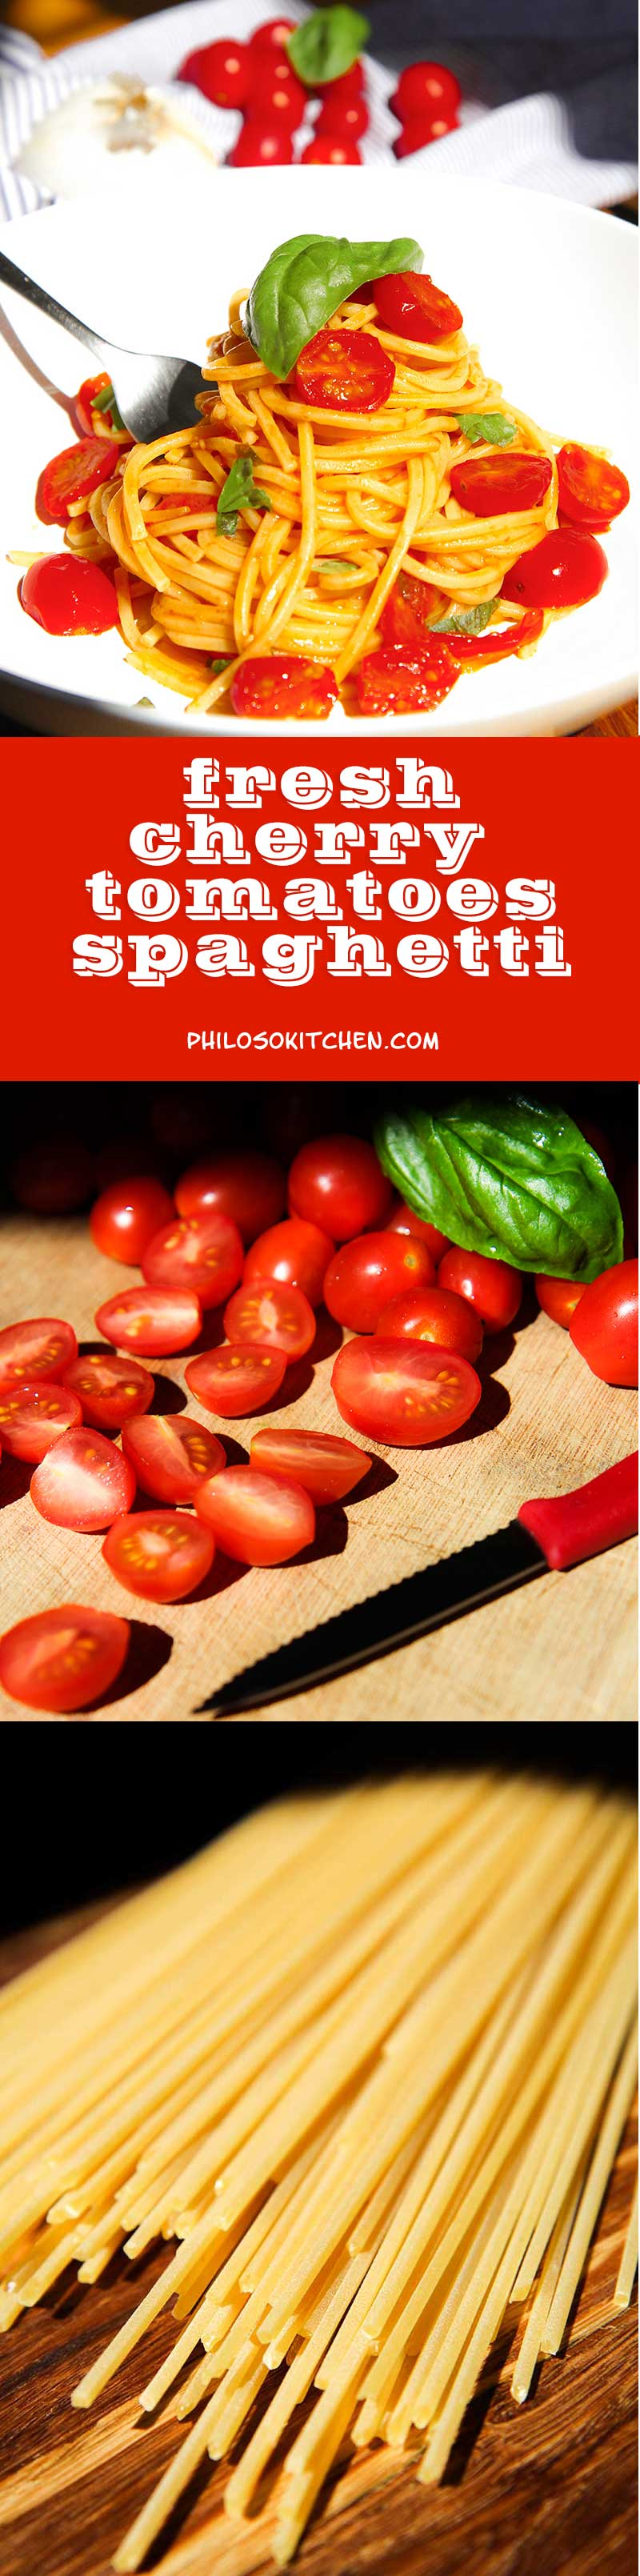 TRADITIONAL SPAGHETTI WITH CHERRY TOMATOES garlic and basil